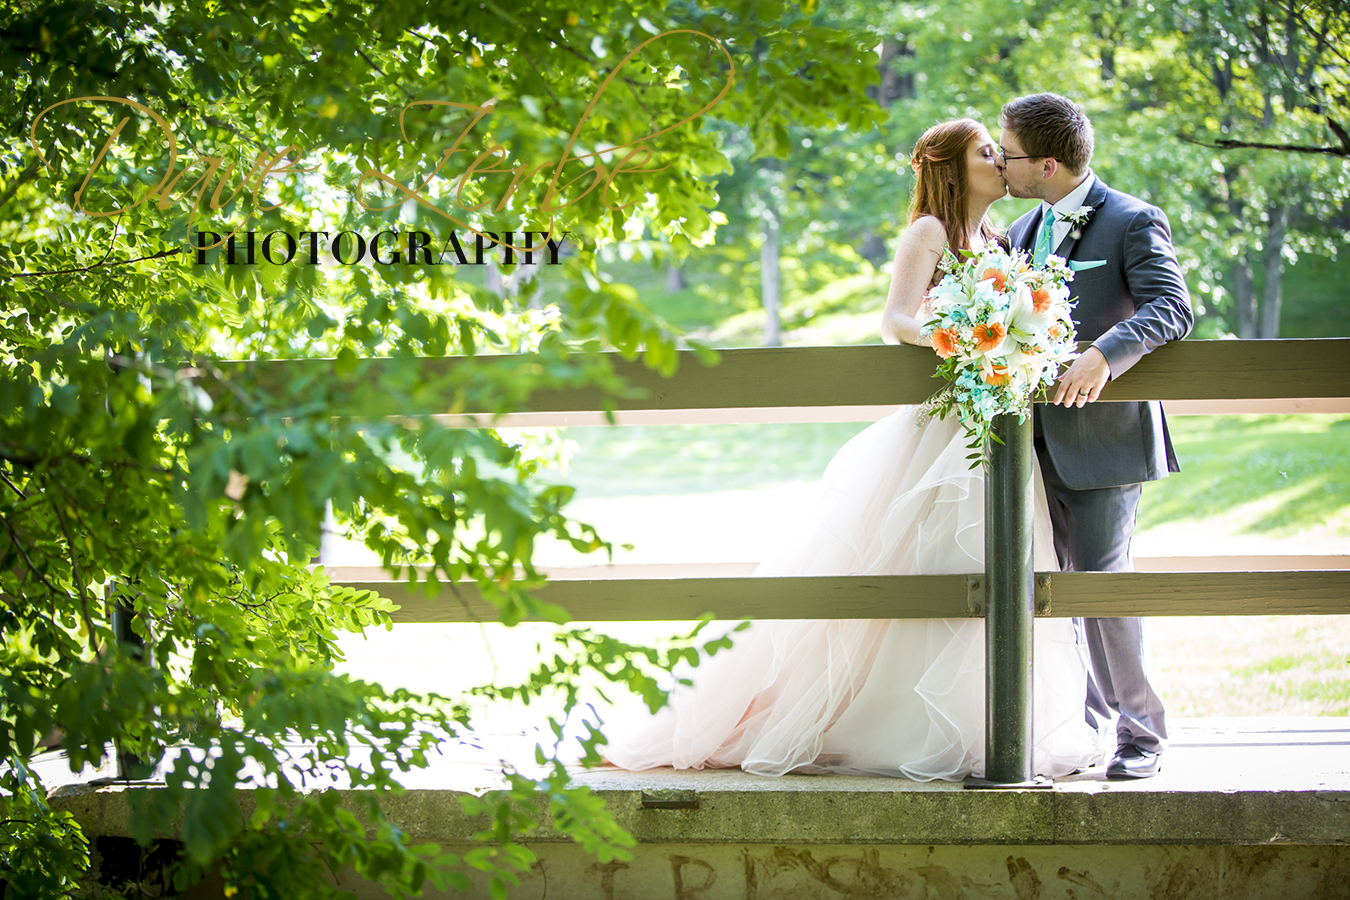 The Wedding of Brittanie Sterley & Corey Miller